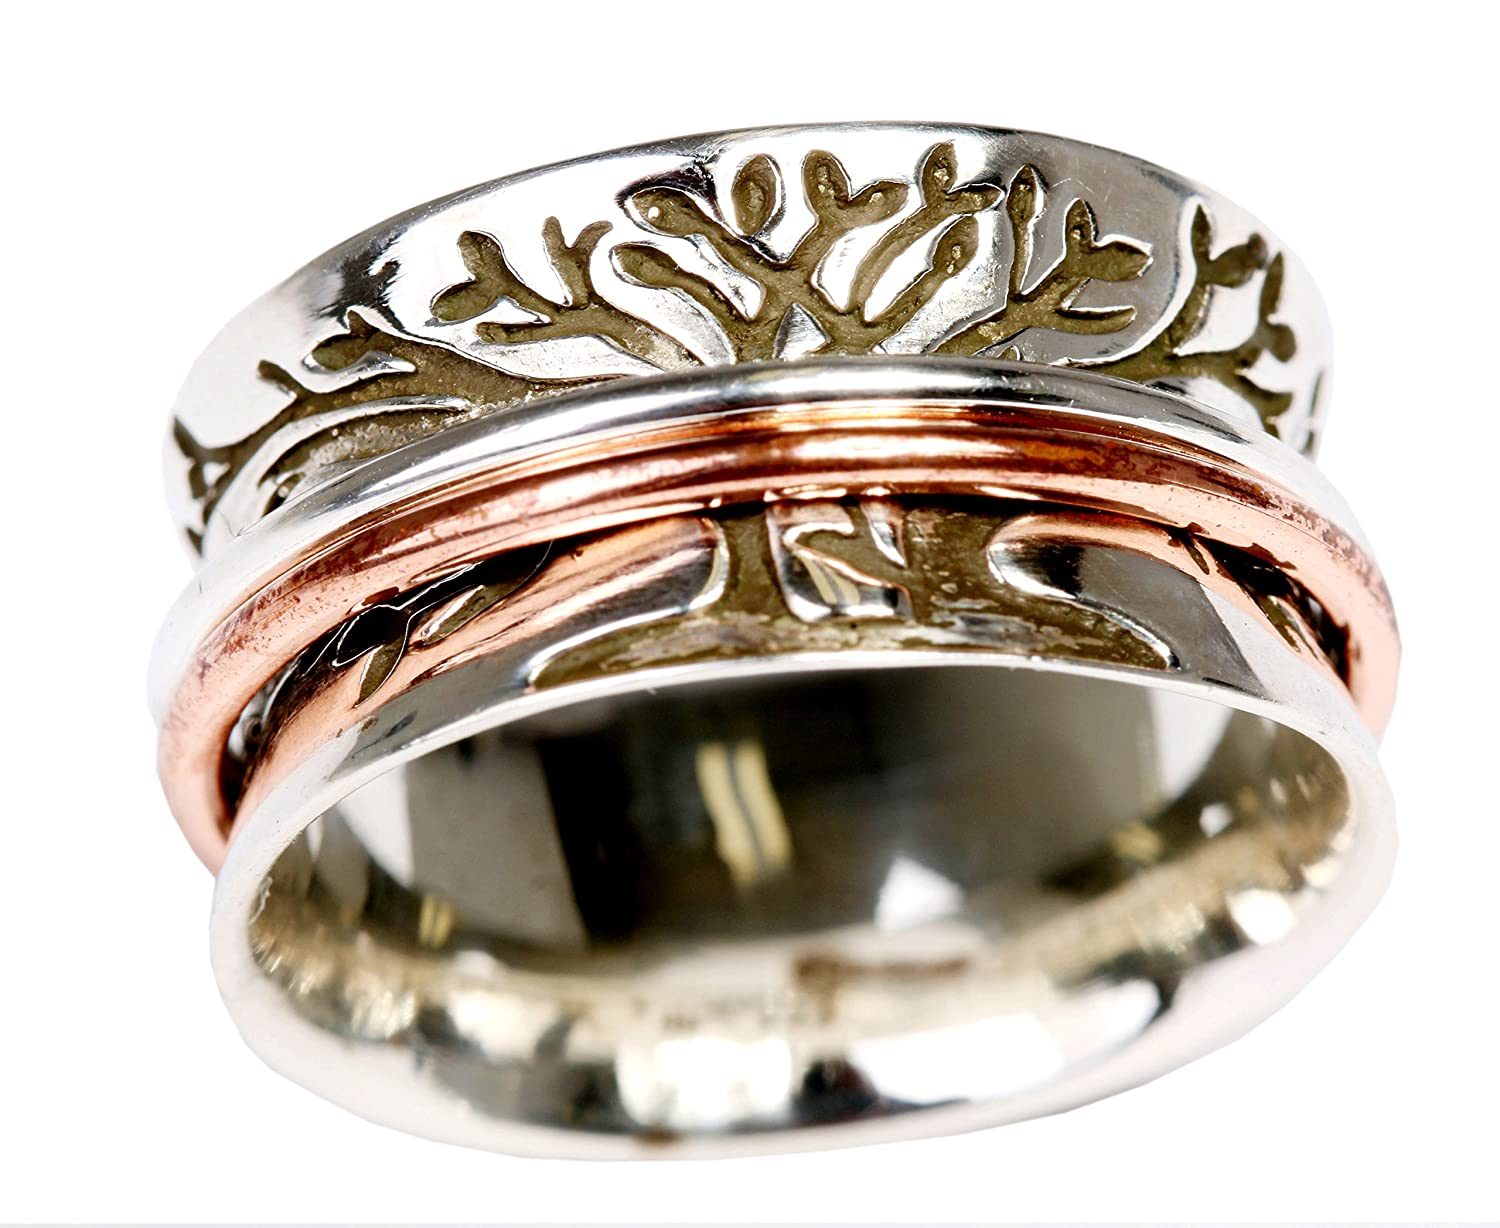 Energy Stone Double Tree Meditation Spinning Ring with 1 Brass 1 Copper Spinners (SKU# SR59)